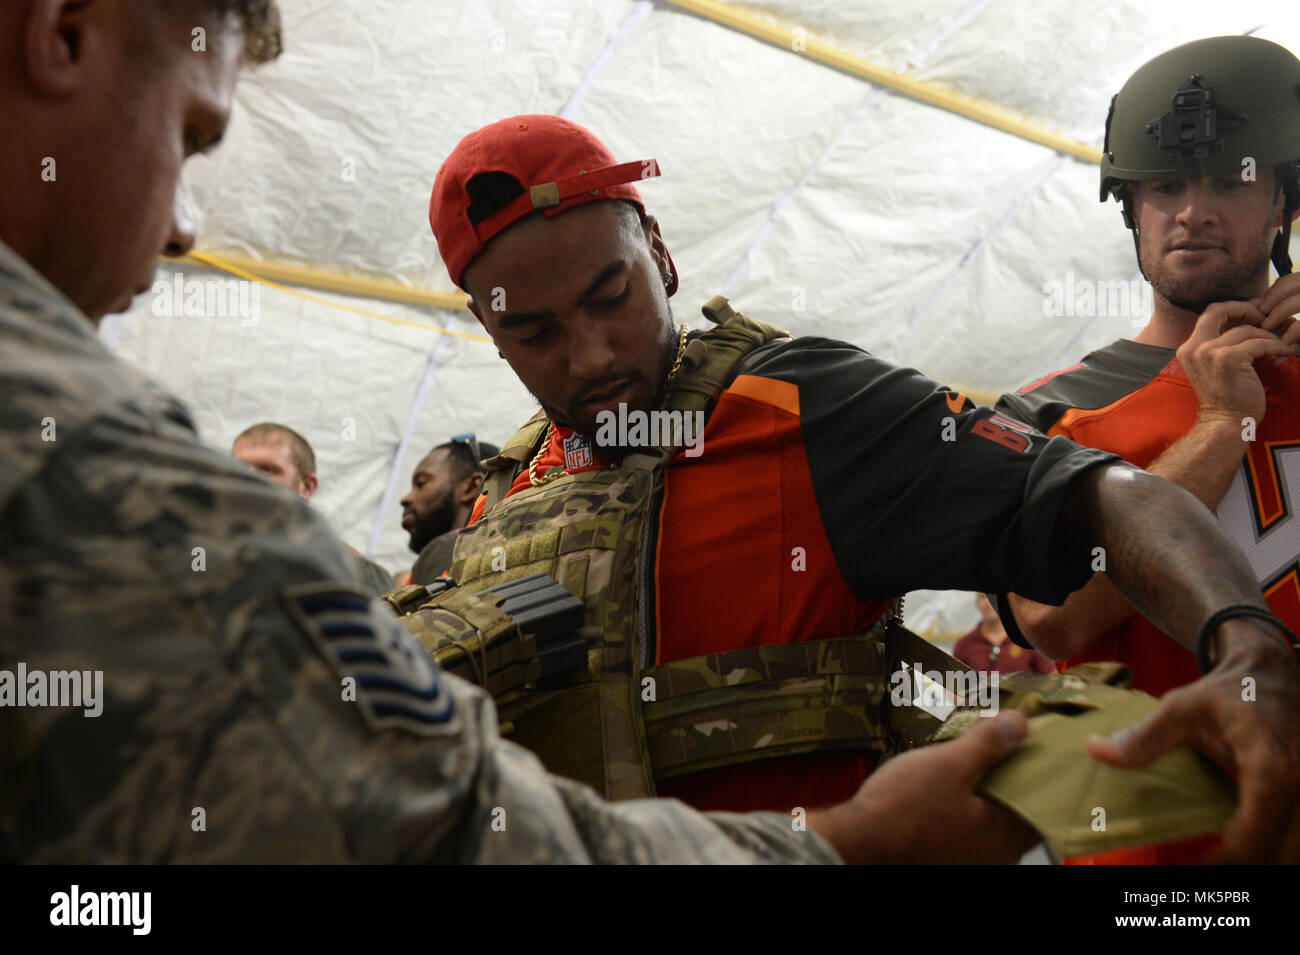 U.S. Air Force Tech. Sgt. Brian Jones, assistant security forces flight chief for U.S. Special Operations Command Deployment Cell, helps Tampa Bay Buccaneers wide receiver DeSean Jackson and third-string quarterback Ryan Griffin try on tactical gear during their visit to MacDill Air Force Base in Tampa, Fla., Nov. 7, 2017. The football players and cheerleaders toured USSOCOM and other base facilities to meet with currently serving personnel and to experience a glimpse of military life. (Photo by U.S. Air Force Master Sgt. Barry Loo) Stock Photo